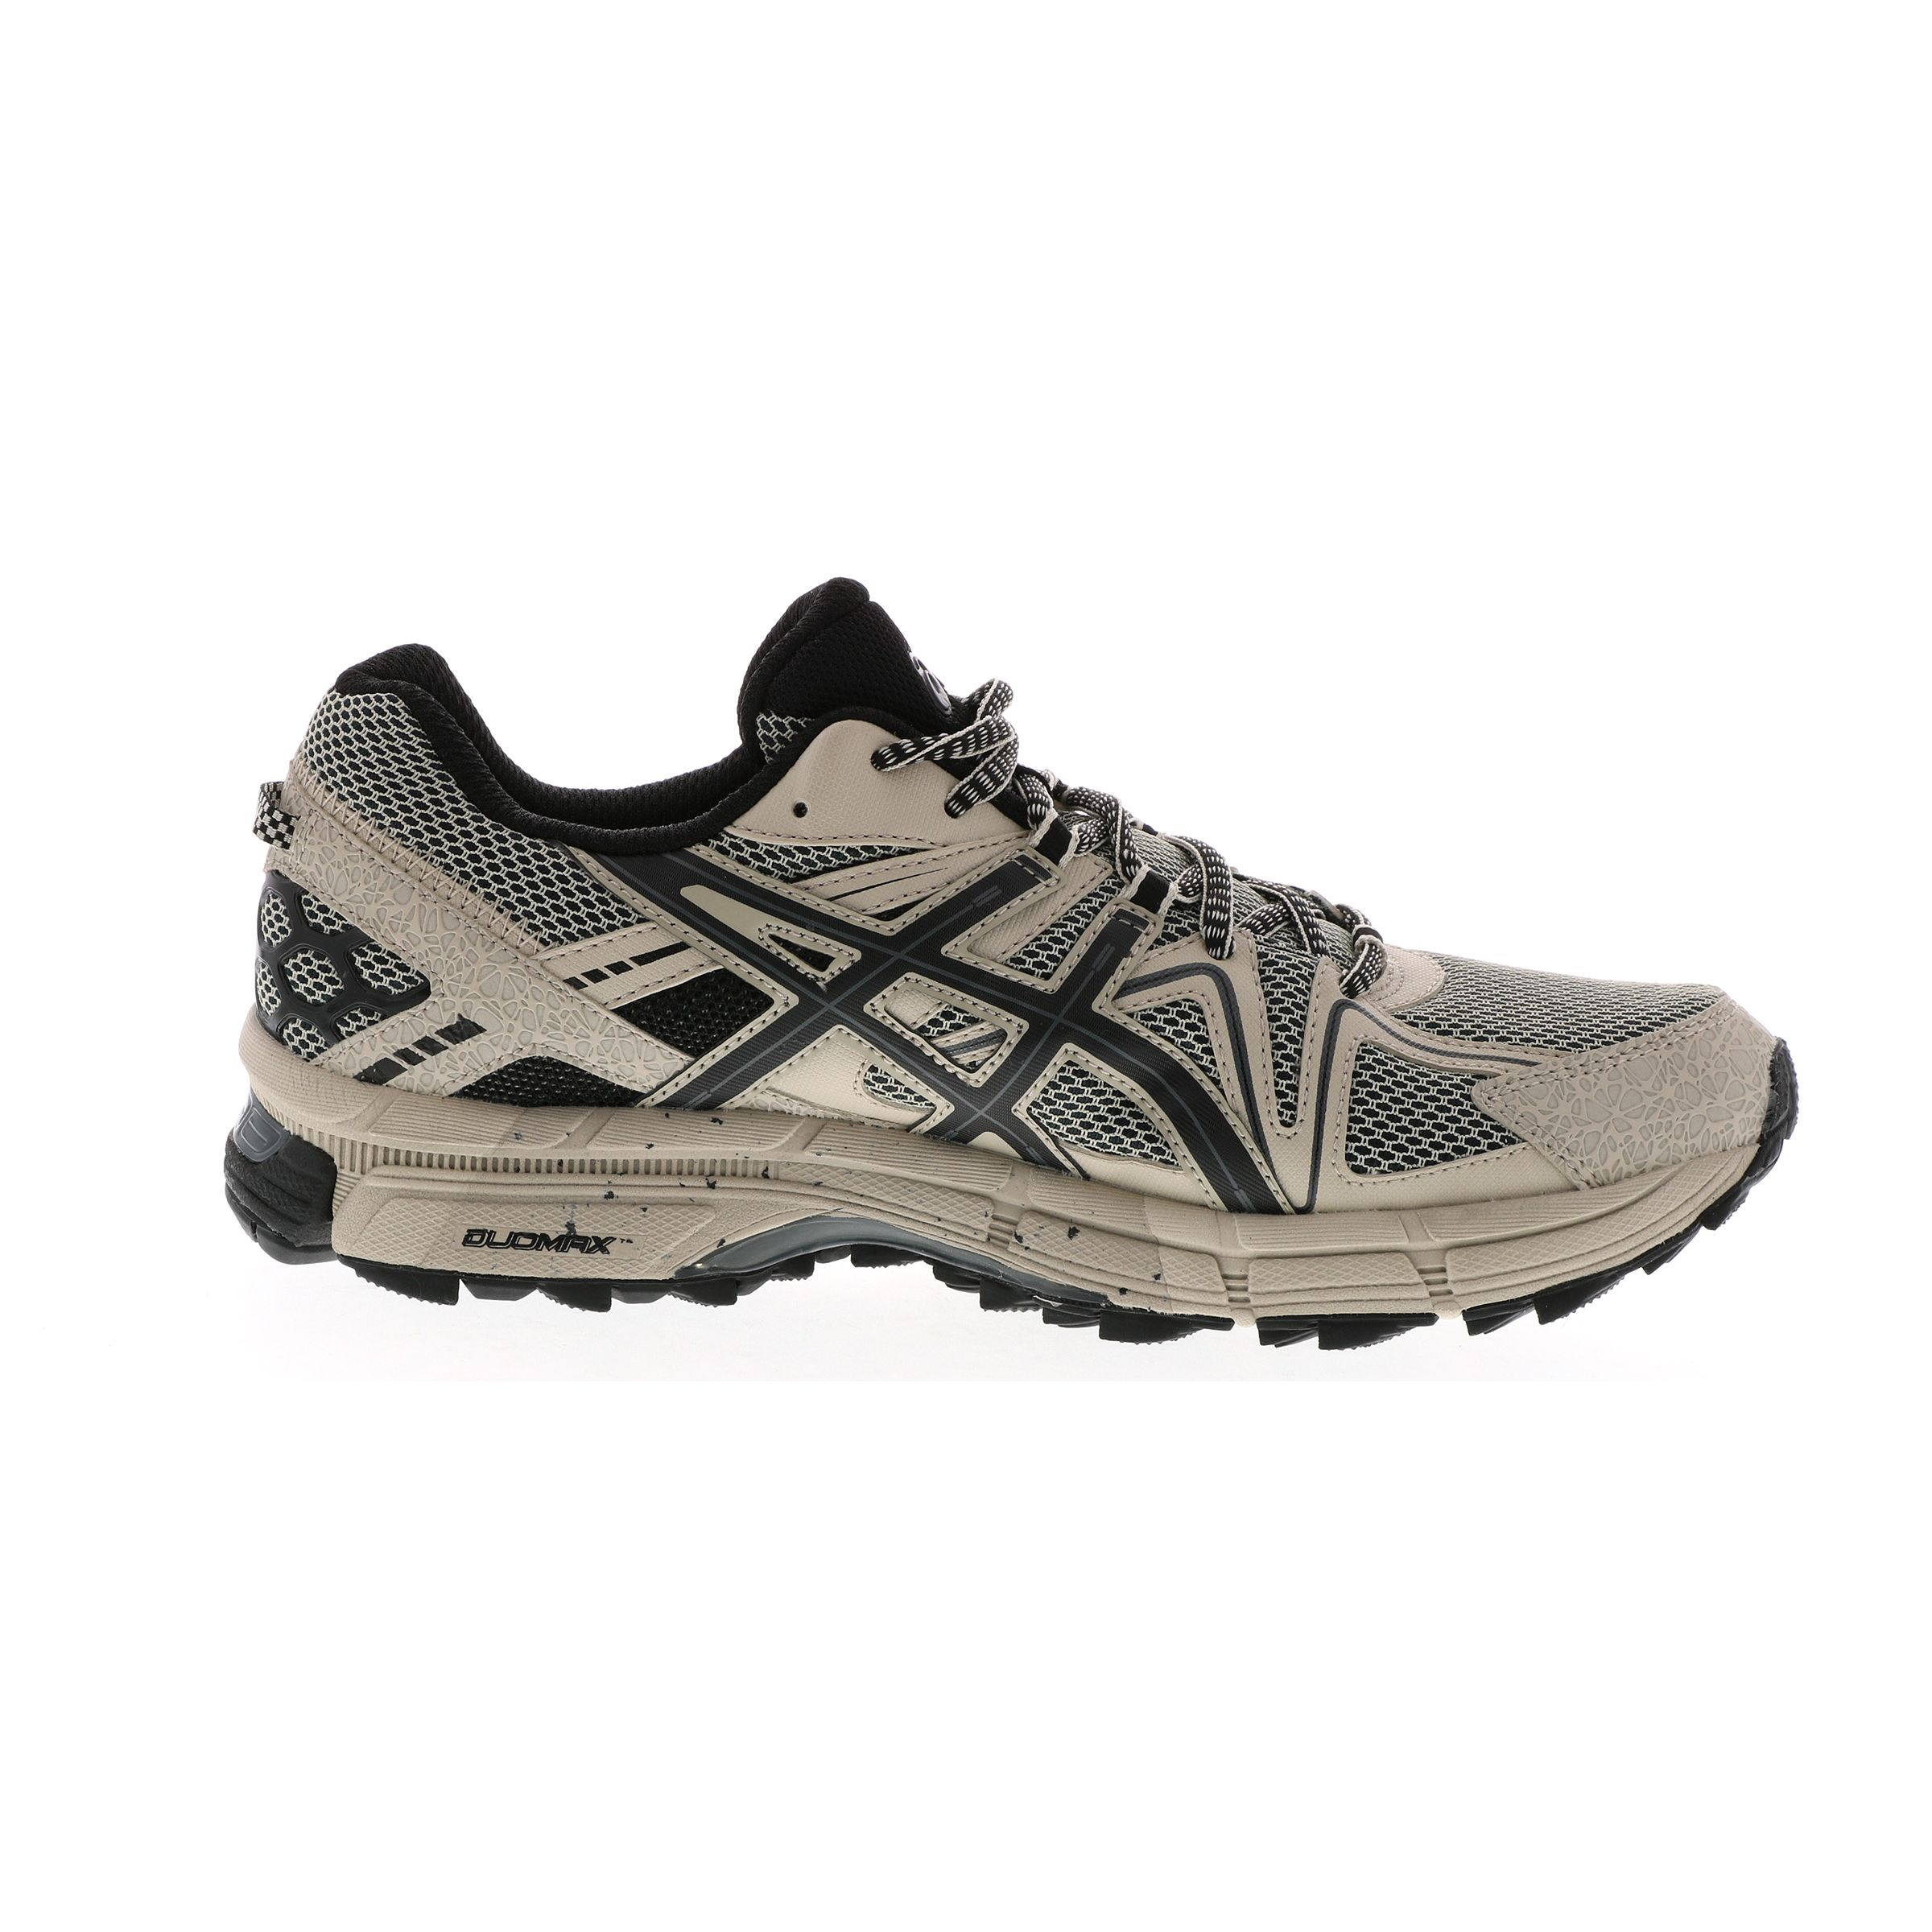 asic hiking shoes online -